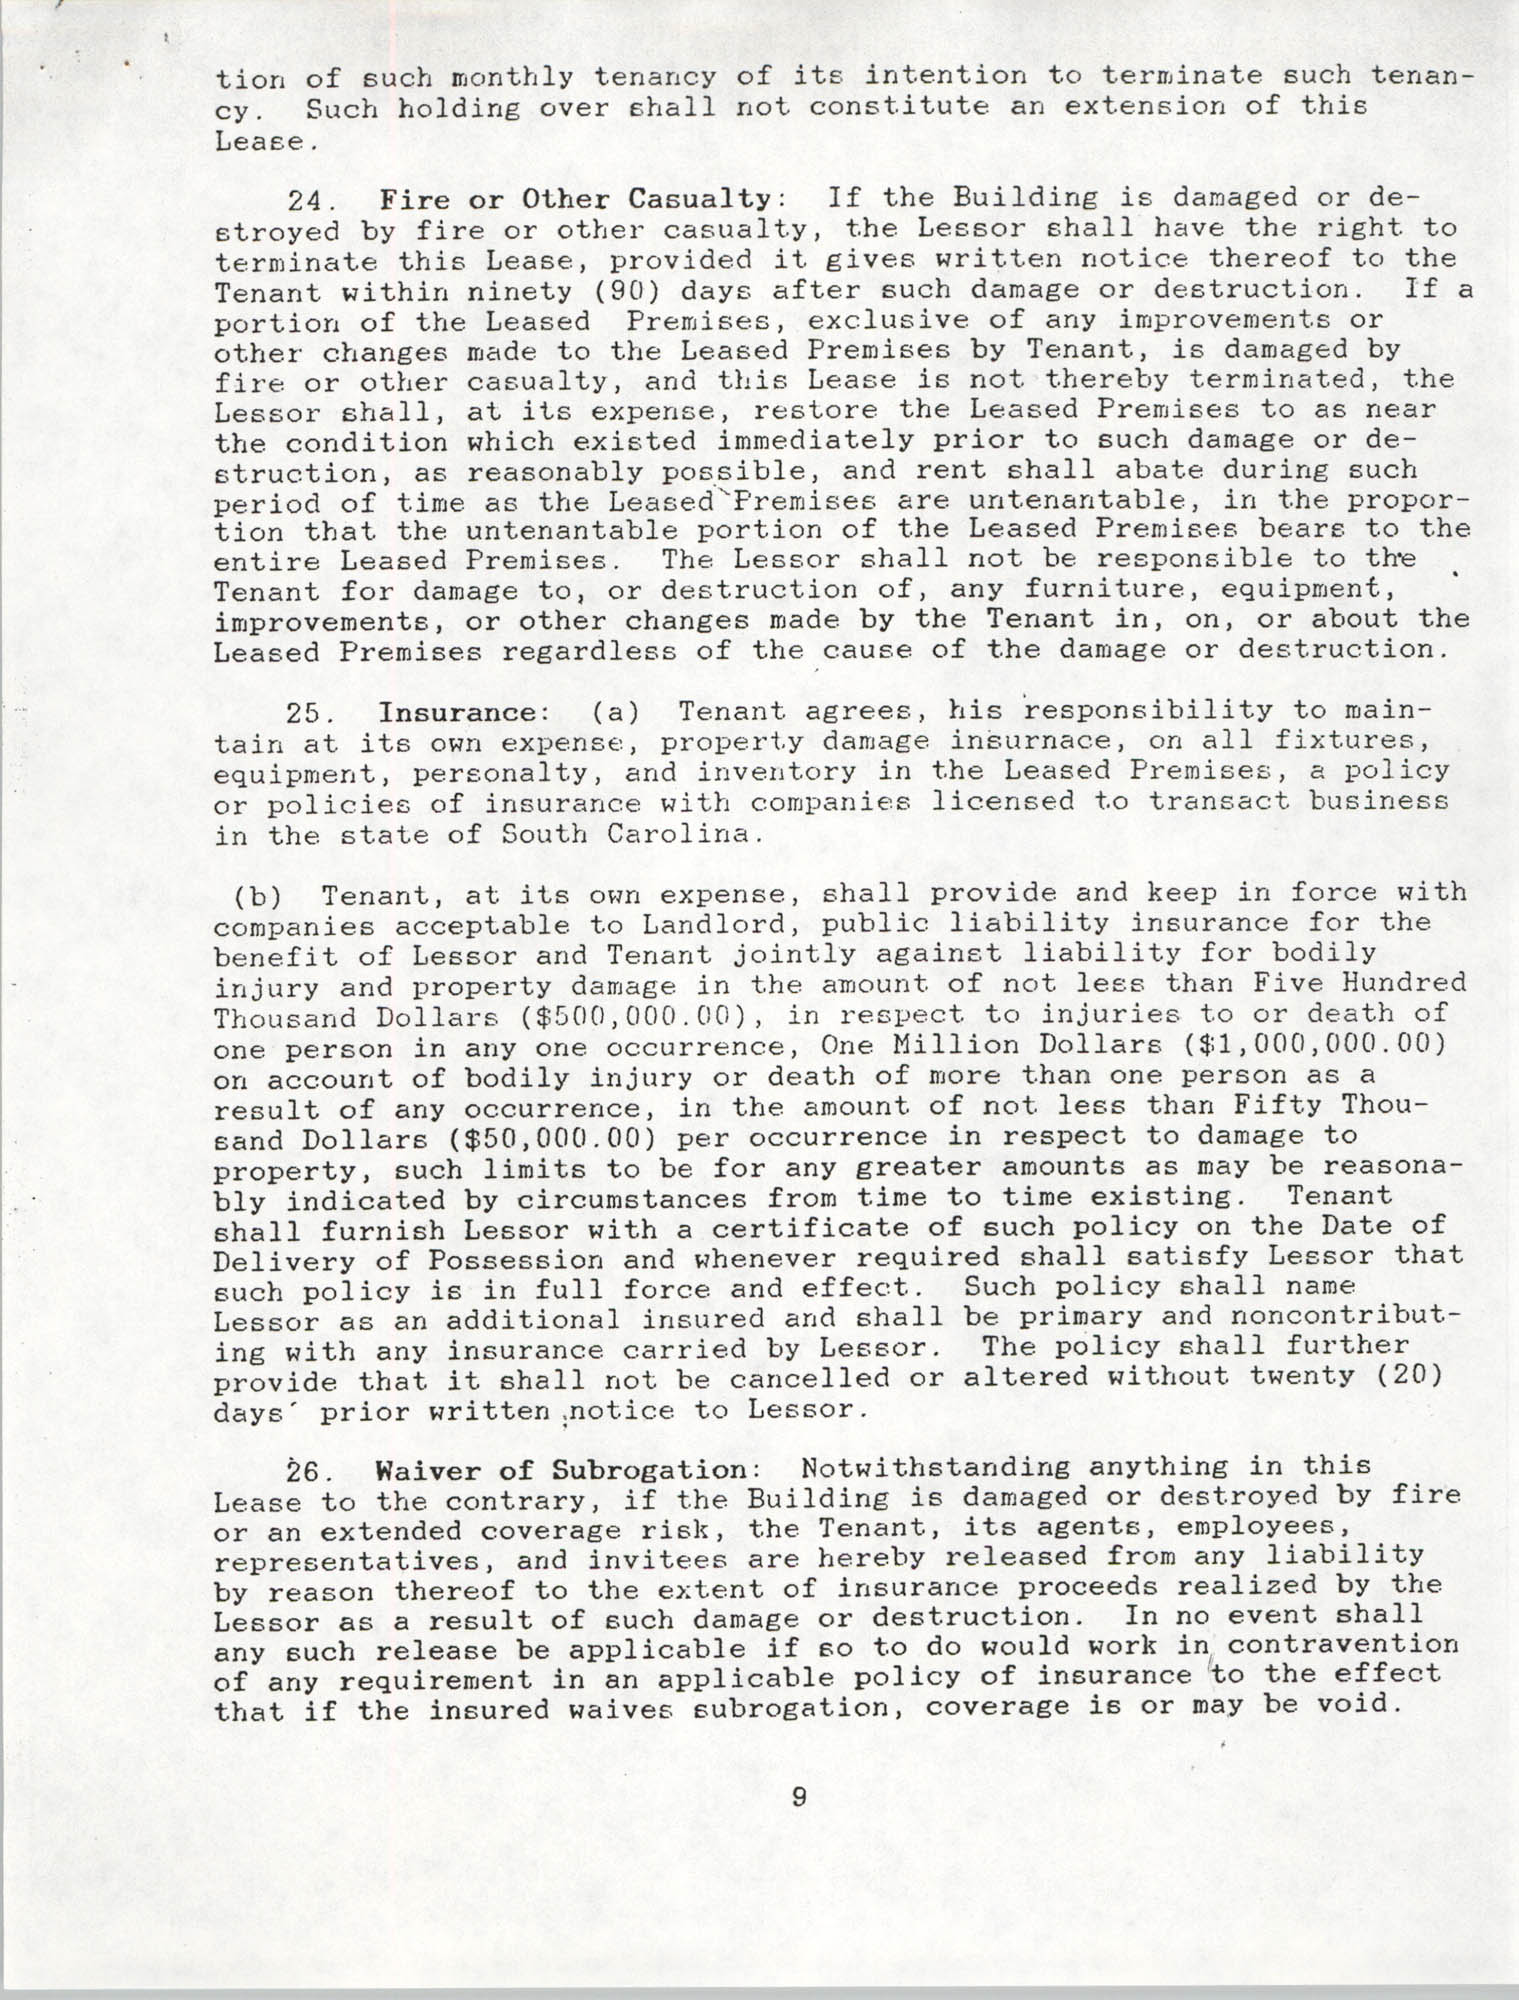 Charleston Branch of the NAACP Leasing Agreement, June 1991 to June 1994, Page 9